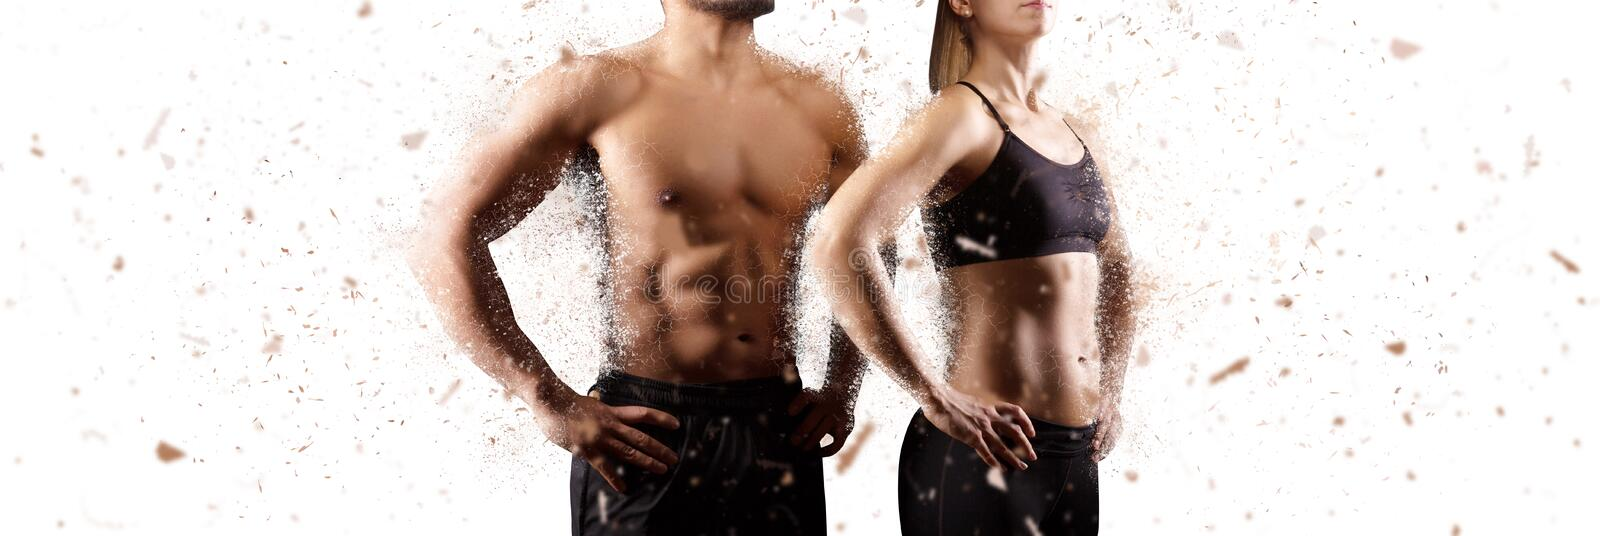 Creating the perfect male and female upper body concept stock photo